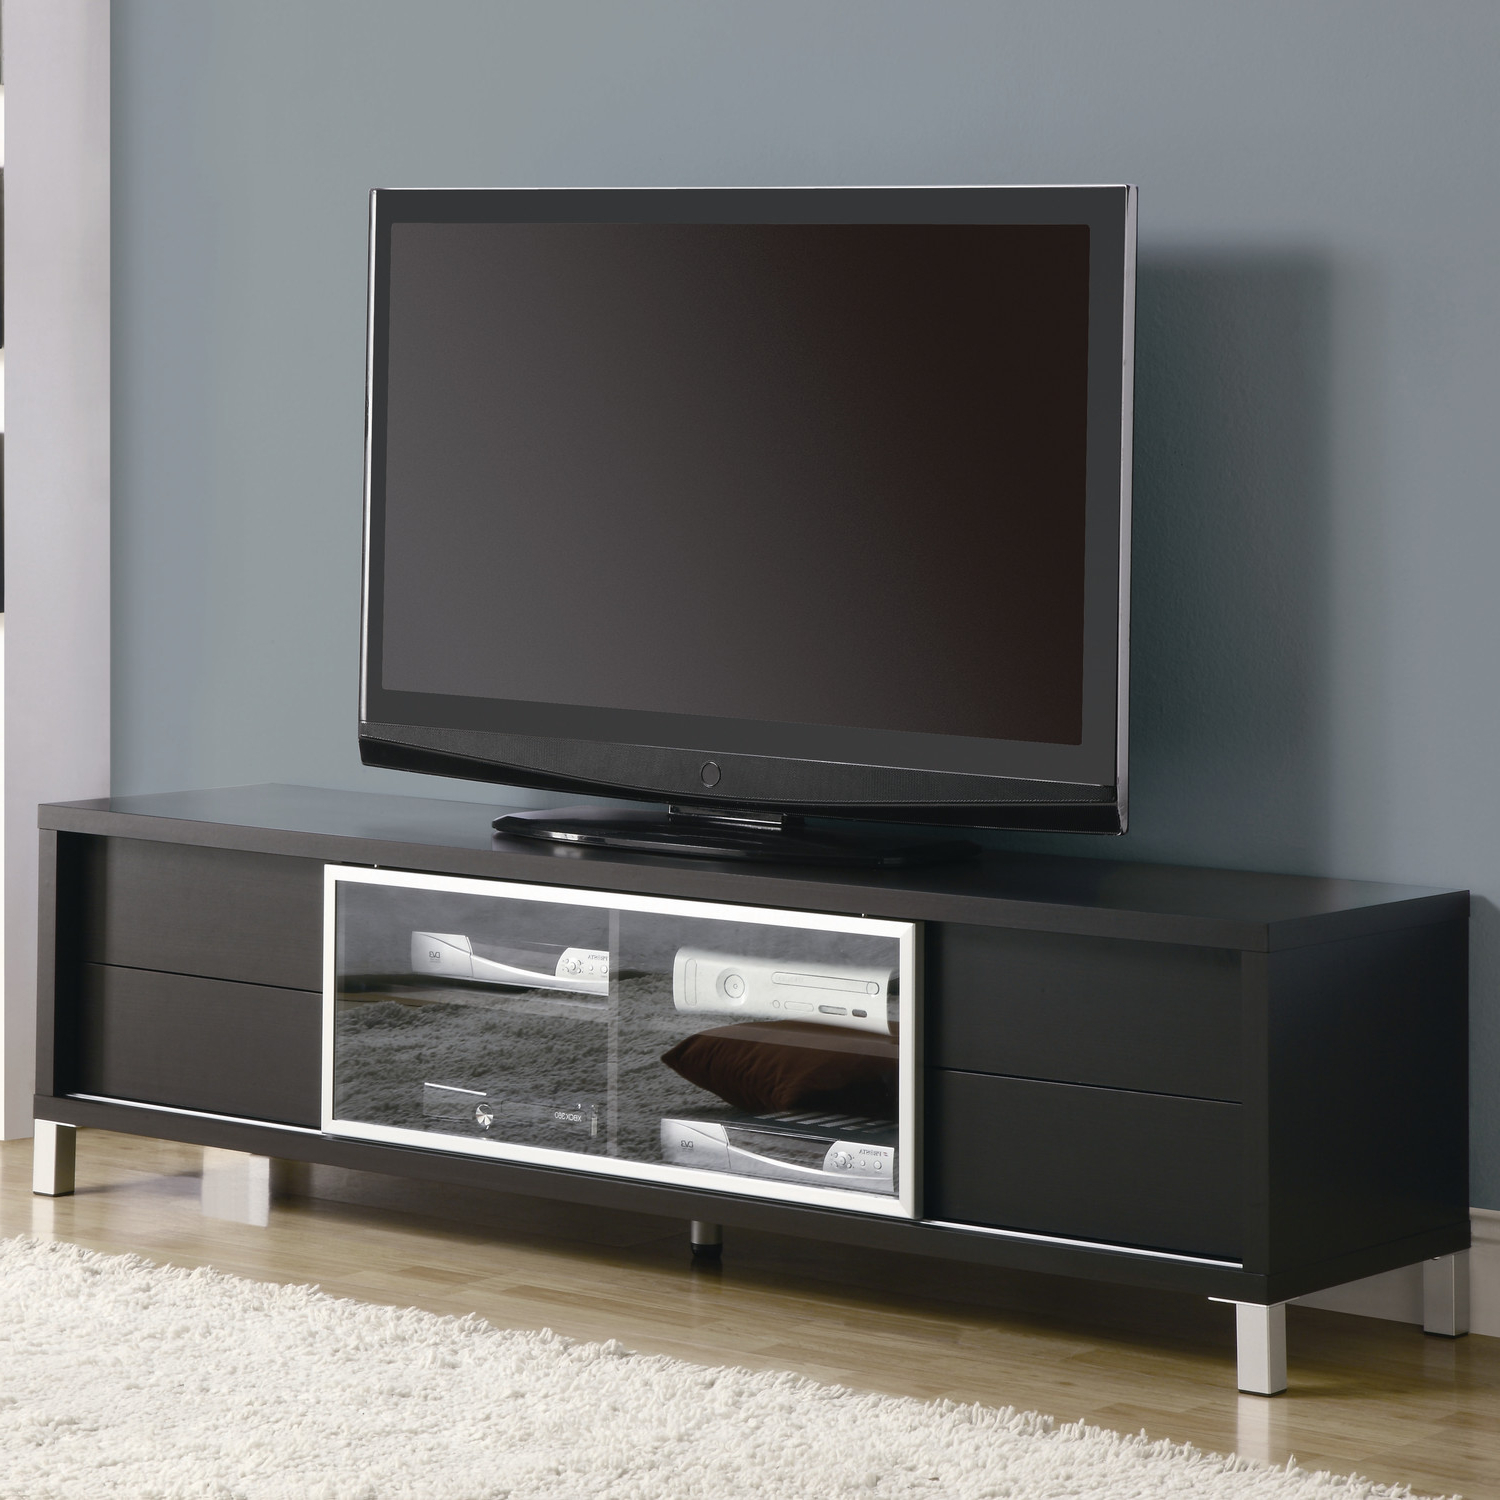 Fashionable Tv Stands Costco Modern Unit Design Ideas Consoles Ikea Stand 55 Regarding Luxury Tv Stands (View 7 of 20)